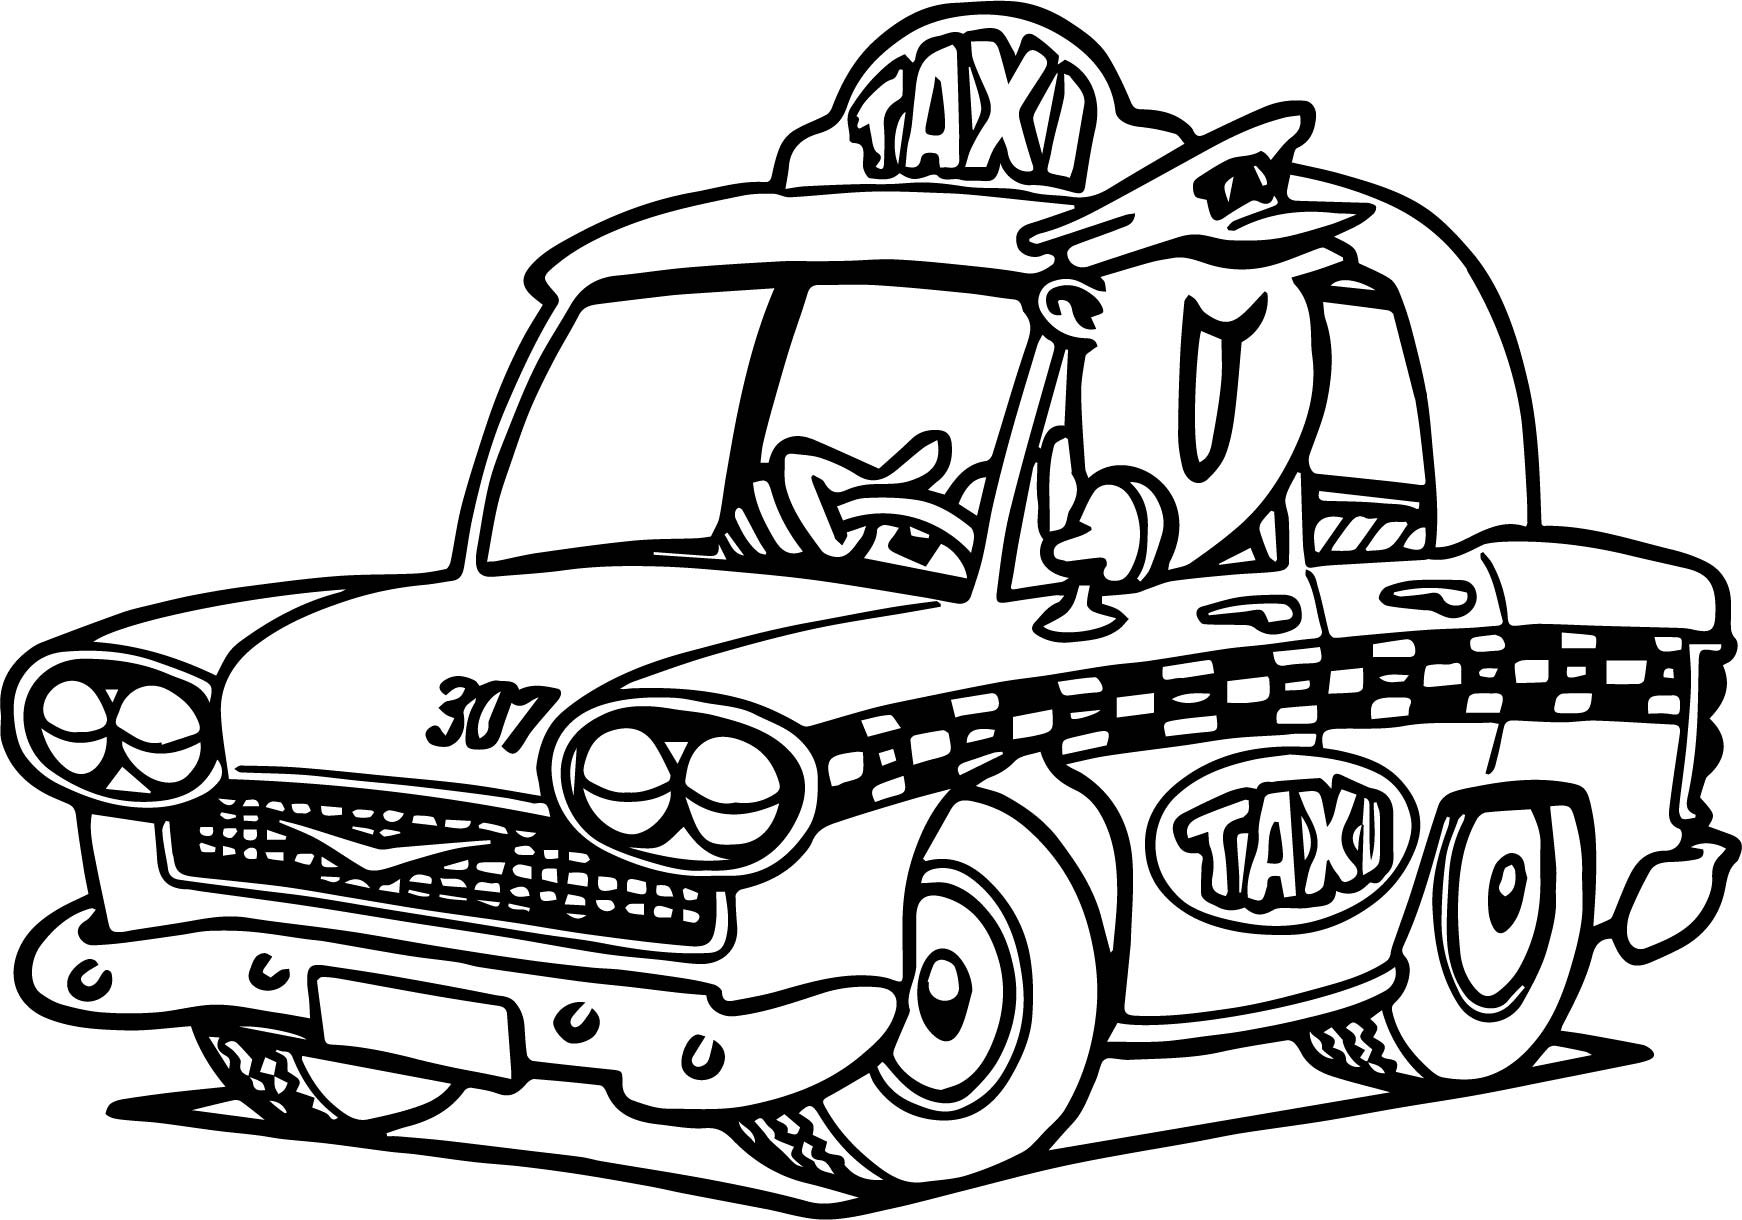 1742x1220 Taxi Transportation Coloring Pages For Kids Lovely Cartoon Taxi